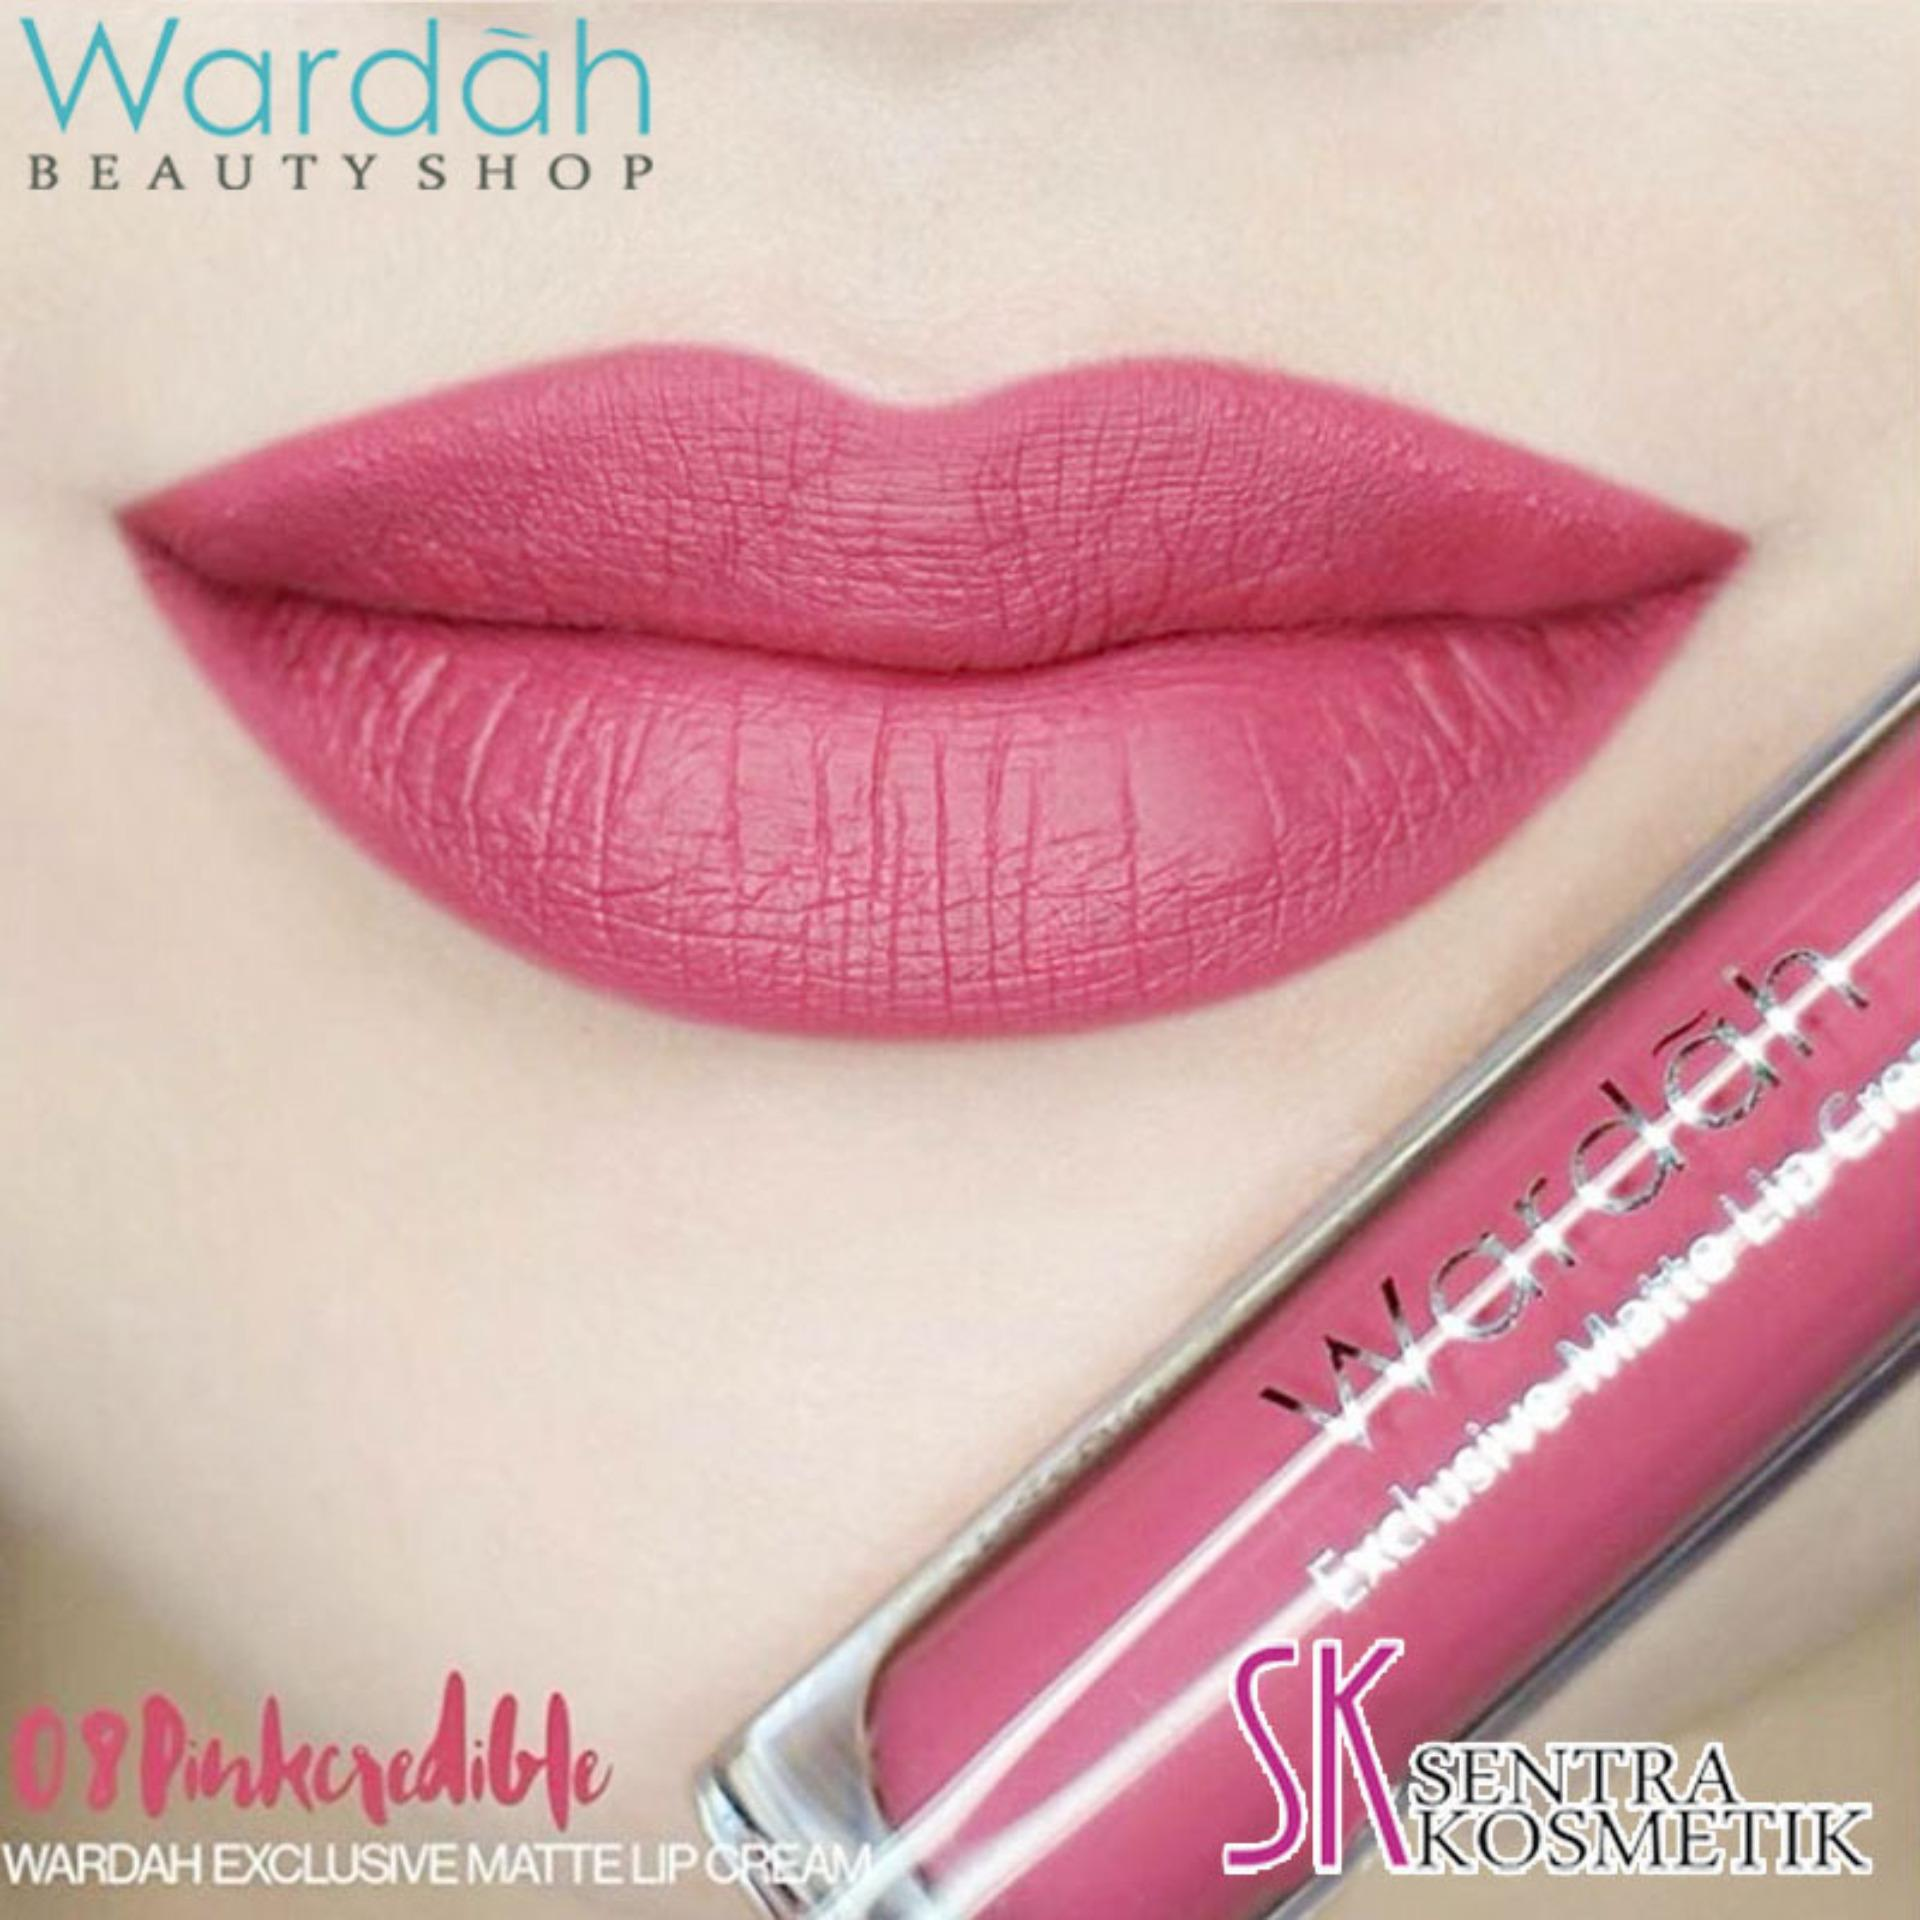 Wardah Exclusive MATTE LIP CREAM No 08 - PINKCREDIBLE